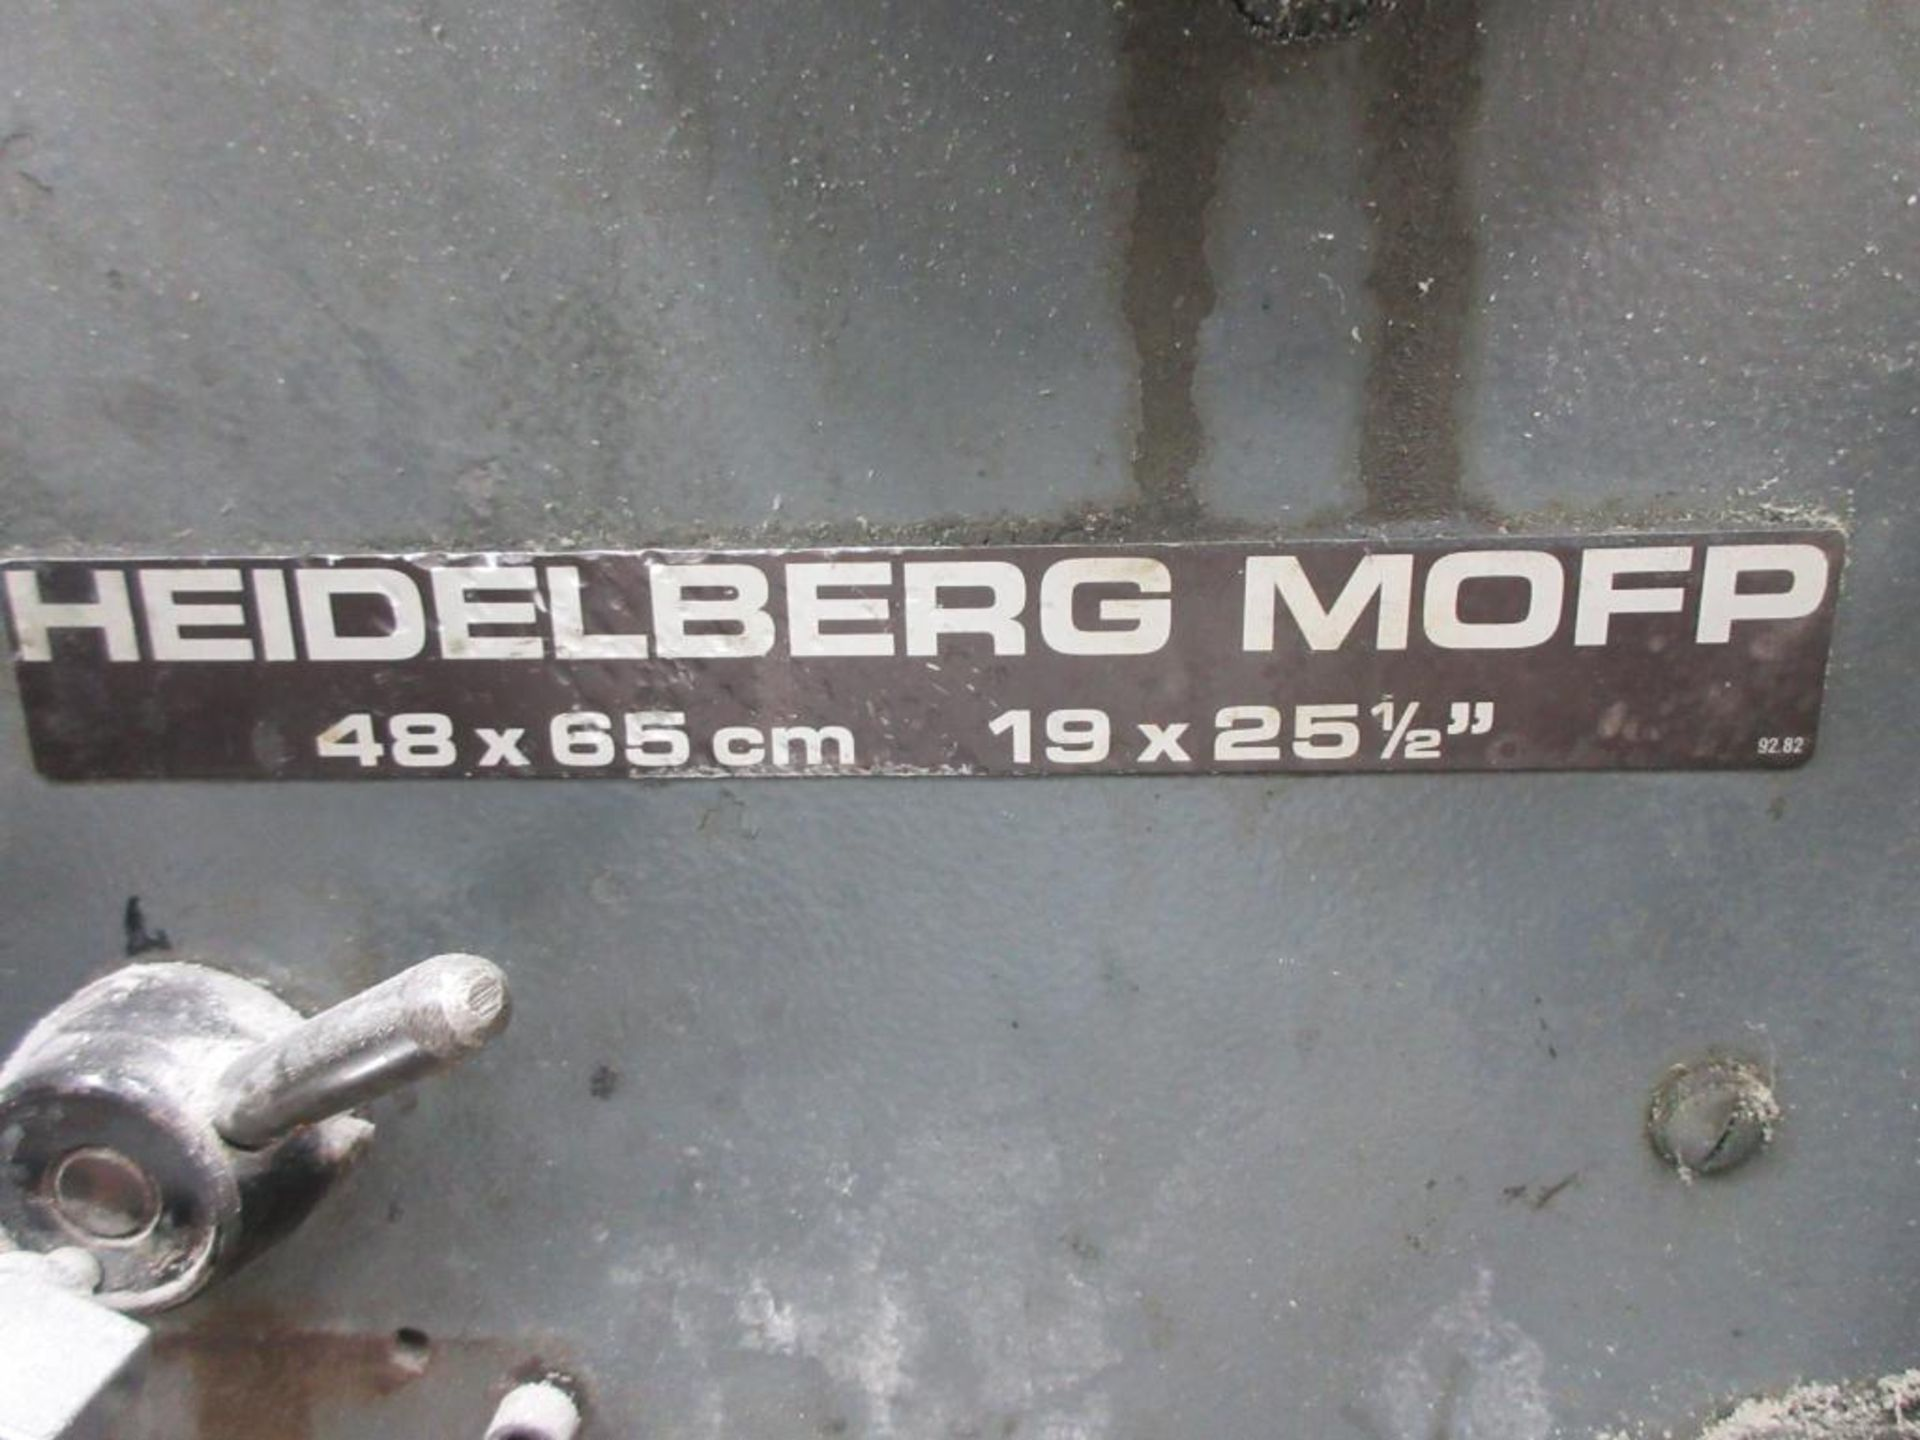 HEIDELBERG MOFP-H 19 x 25_, 5 color sheet fed offset perfecting press with high pile delivery, sn 60 - Image 5 of 11